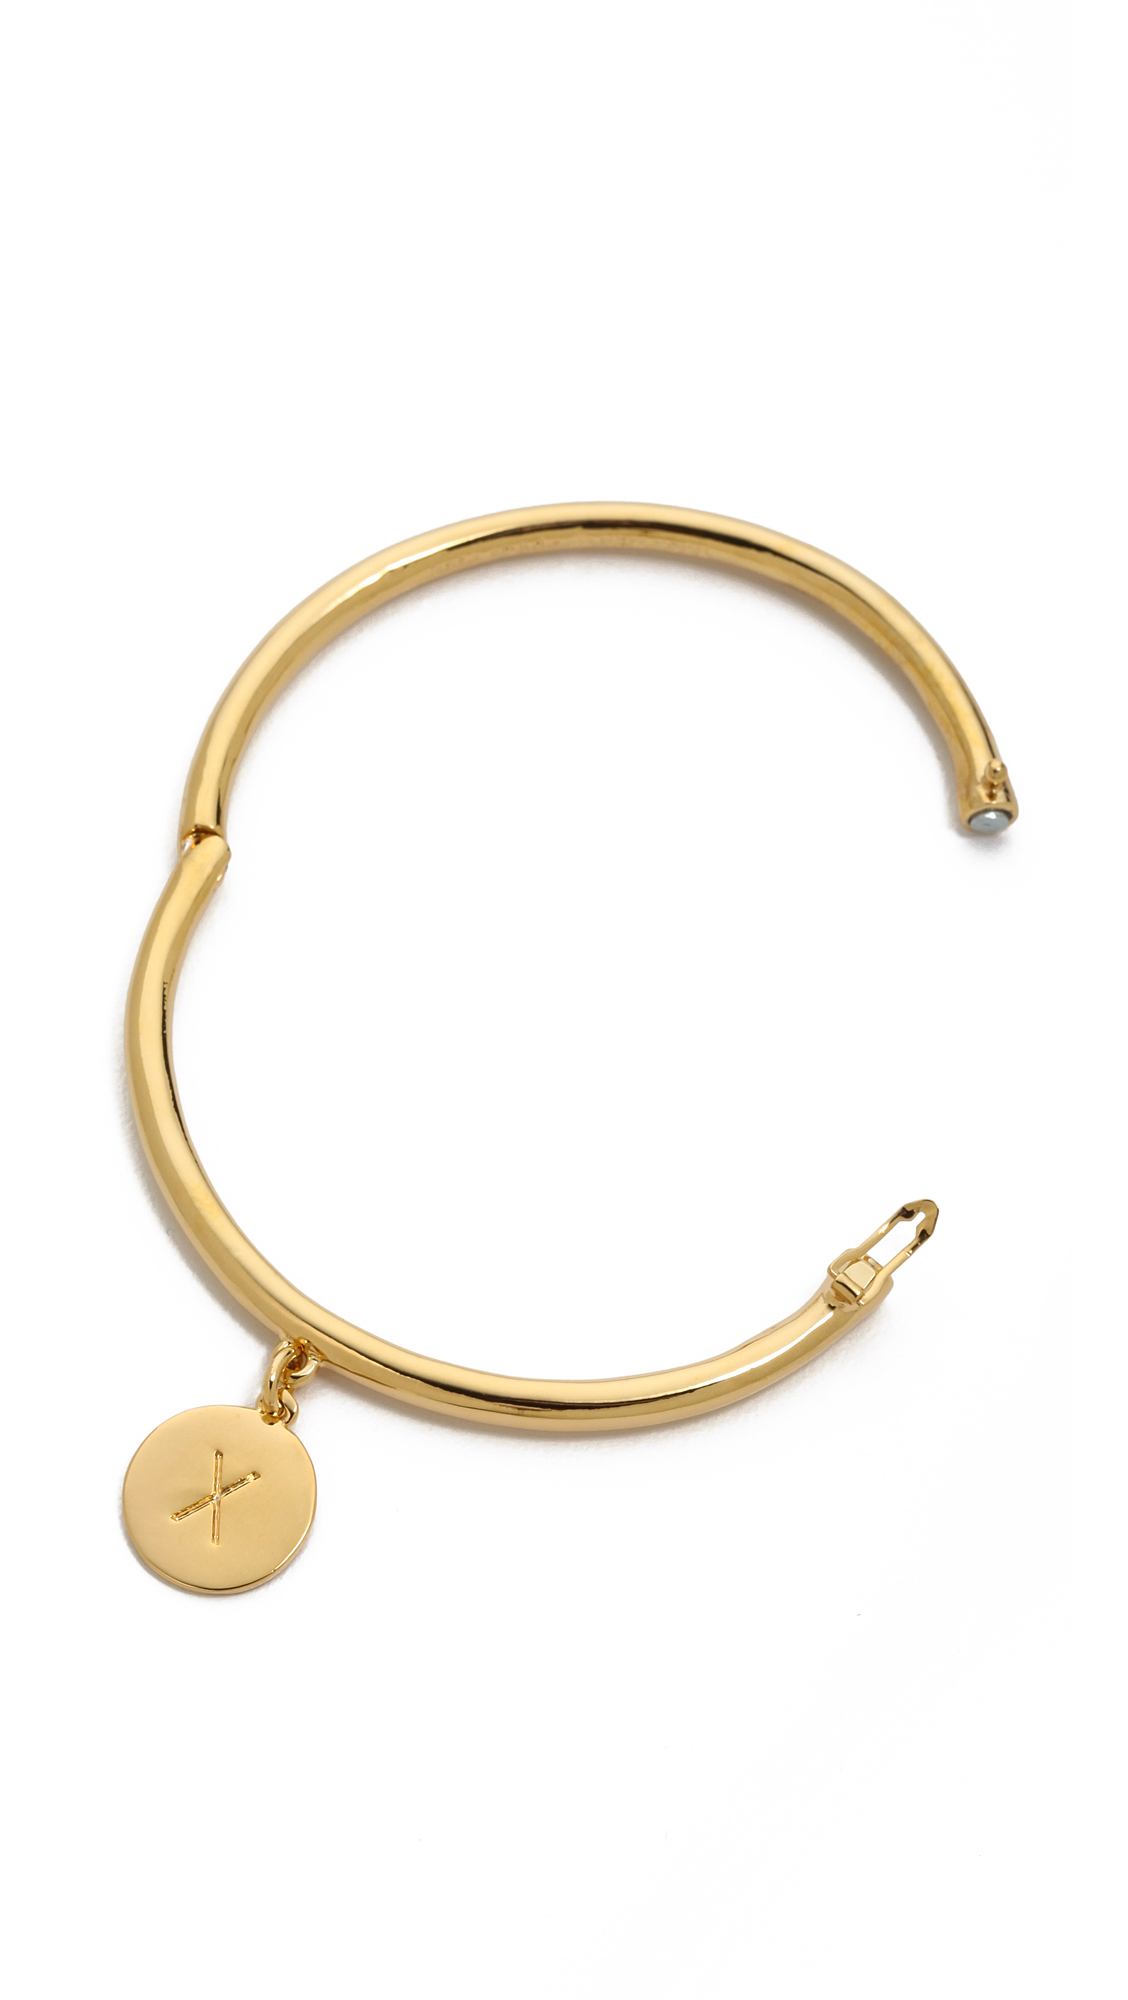 Kate spade charm letter bangle bracelet j in gold x lyst for Letter j bracelet